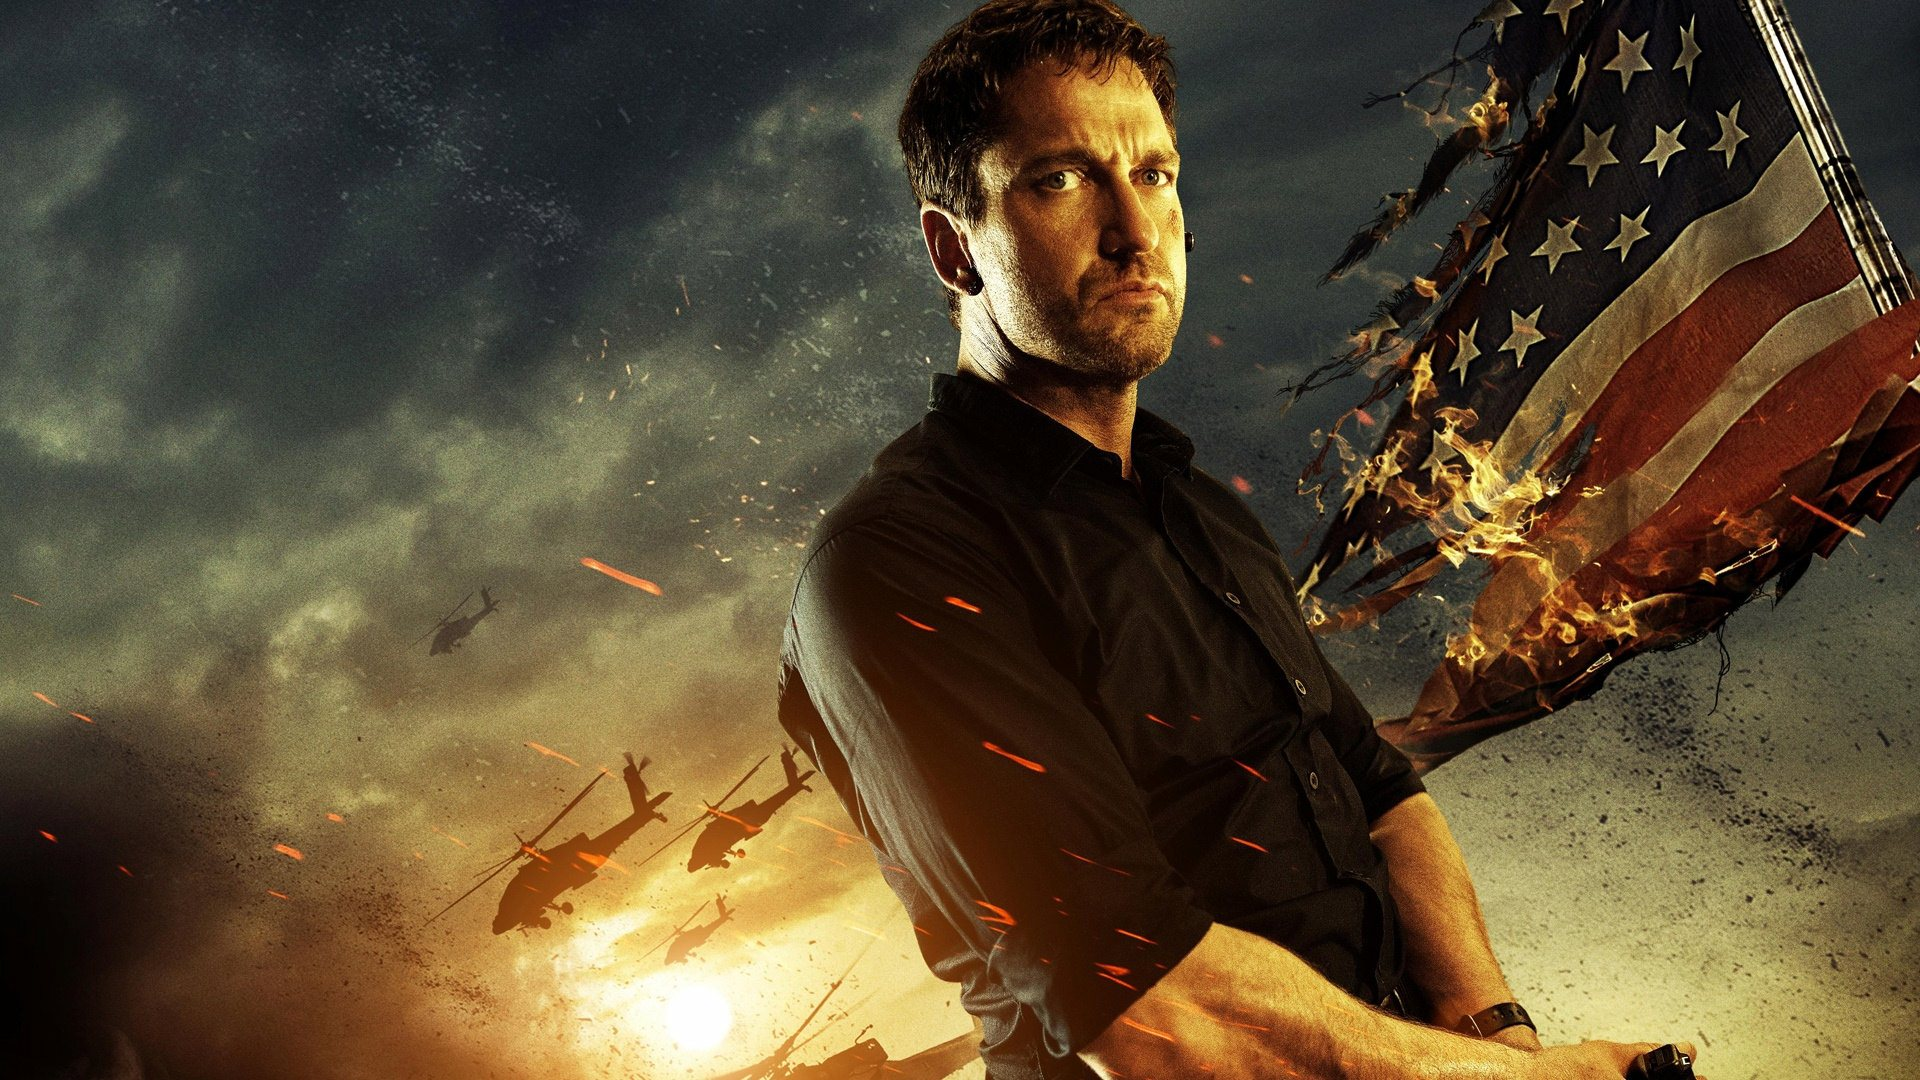 gerard butler olympus has fallen wallpaper background